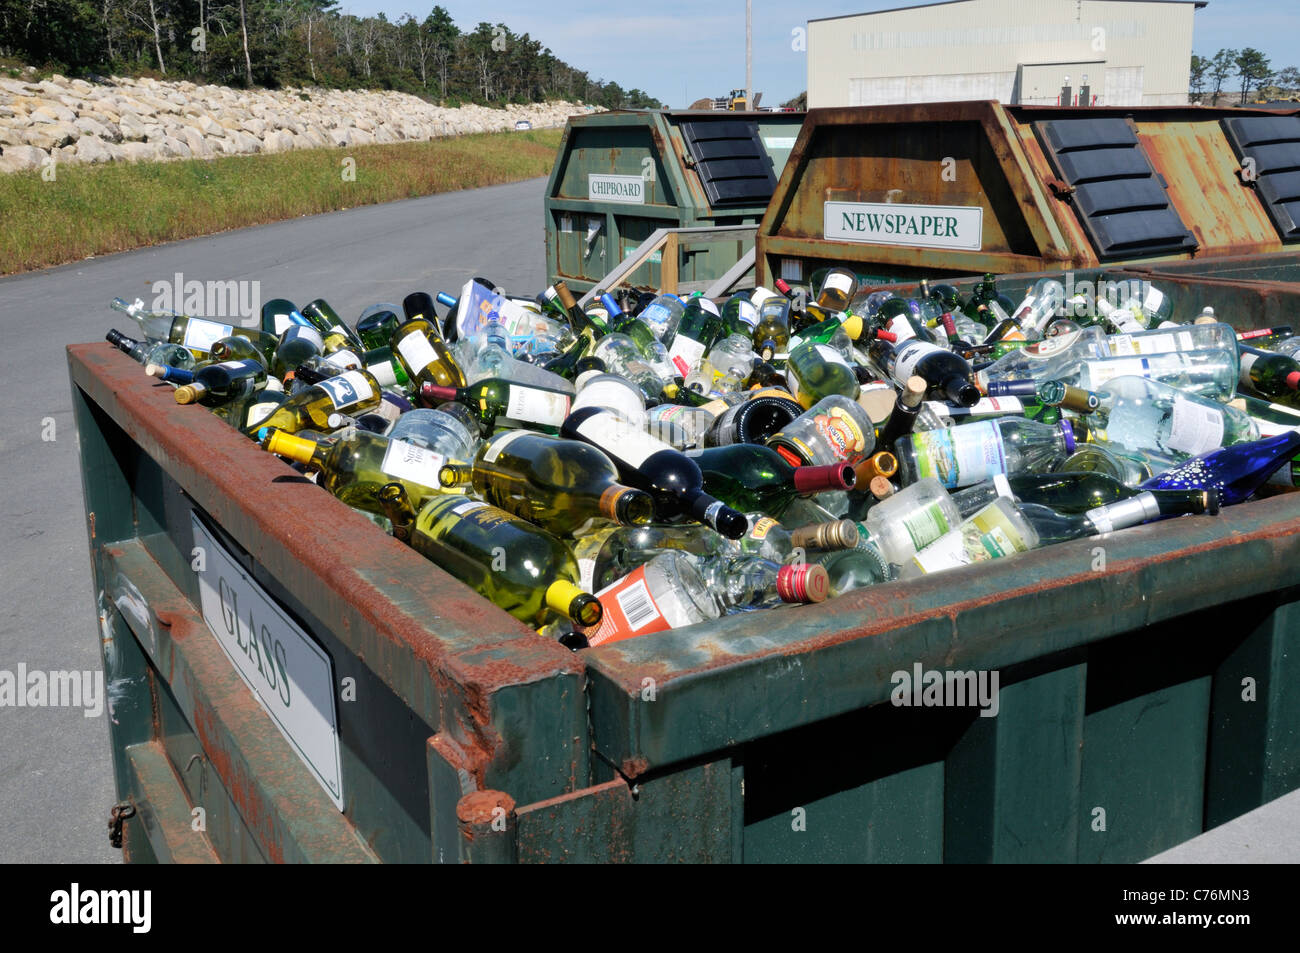 Full dumpster of glass bottles for recycling at a landfill & recycling transfer station in Bourne, Cape Cod, - Stock Image